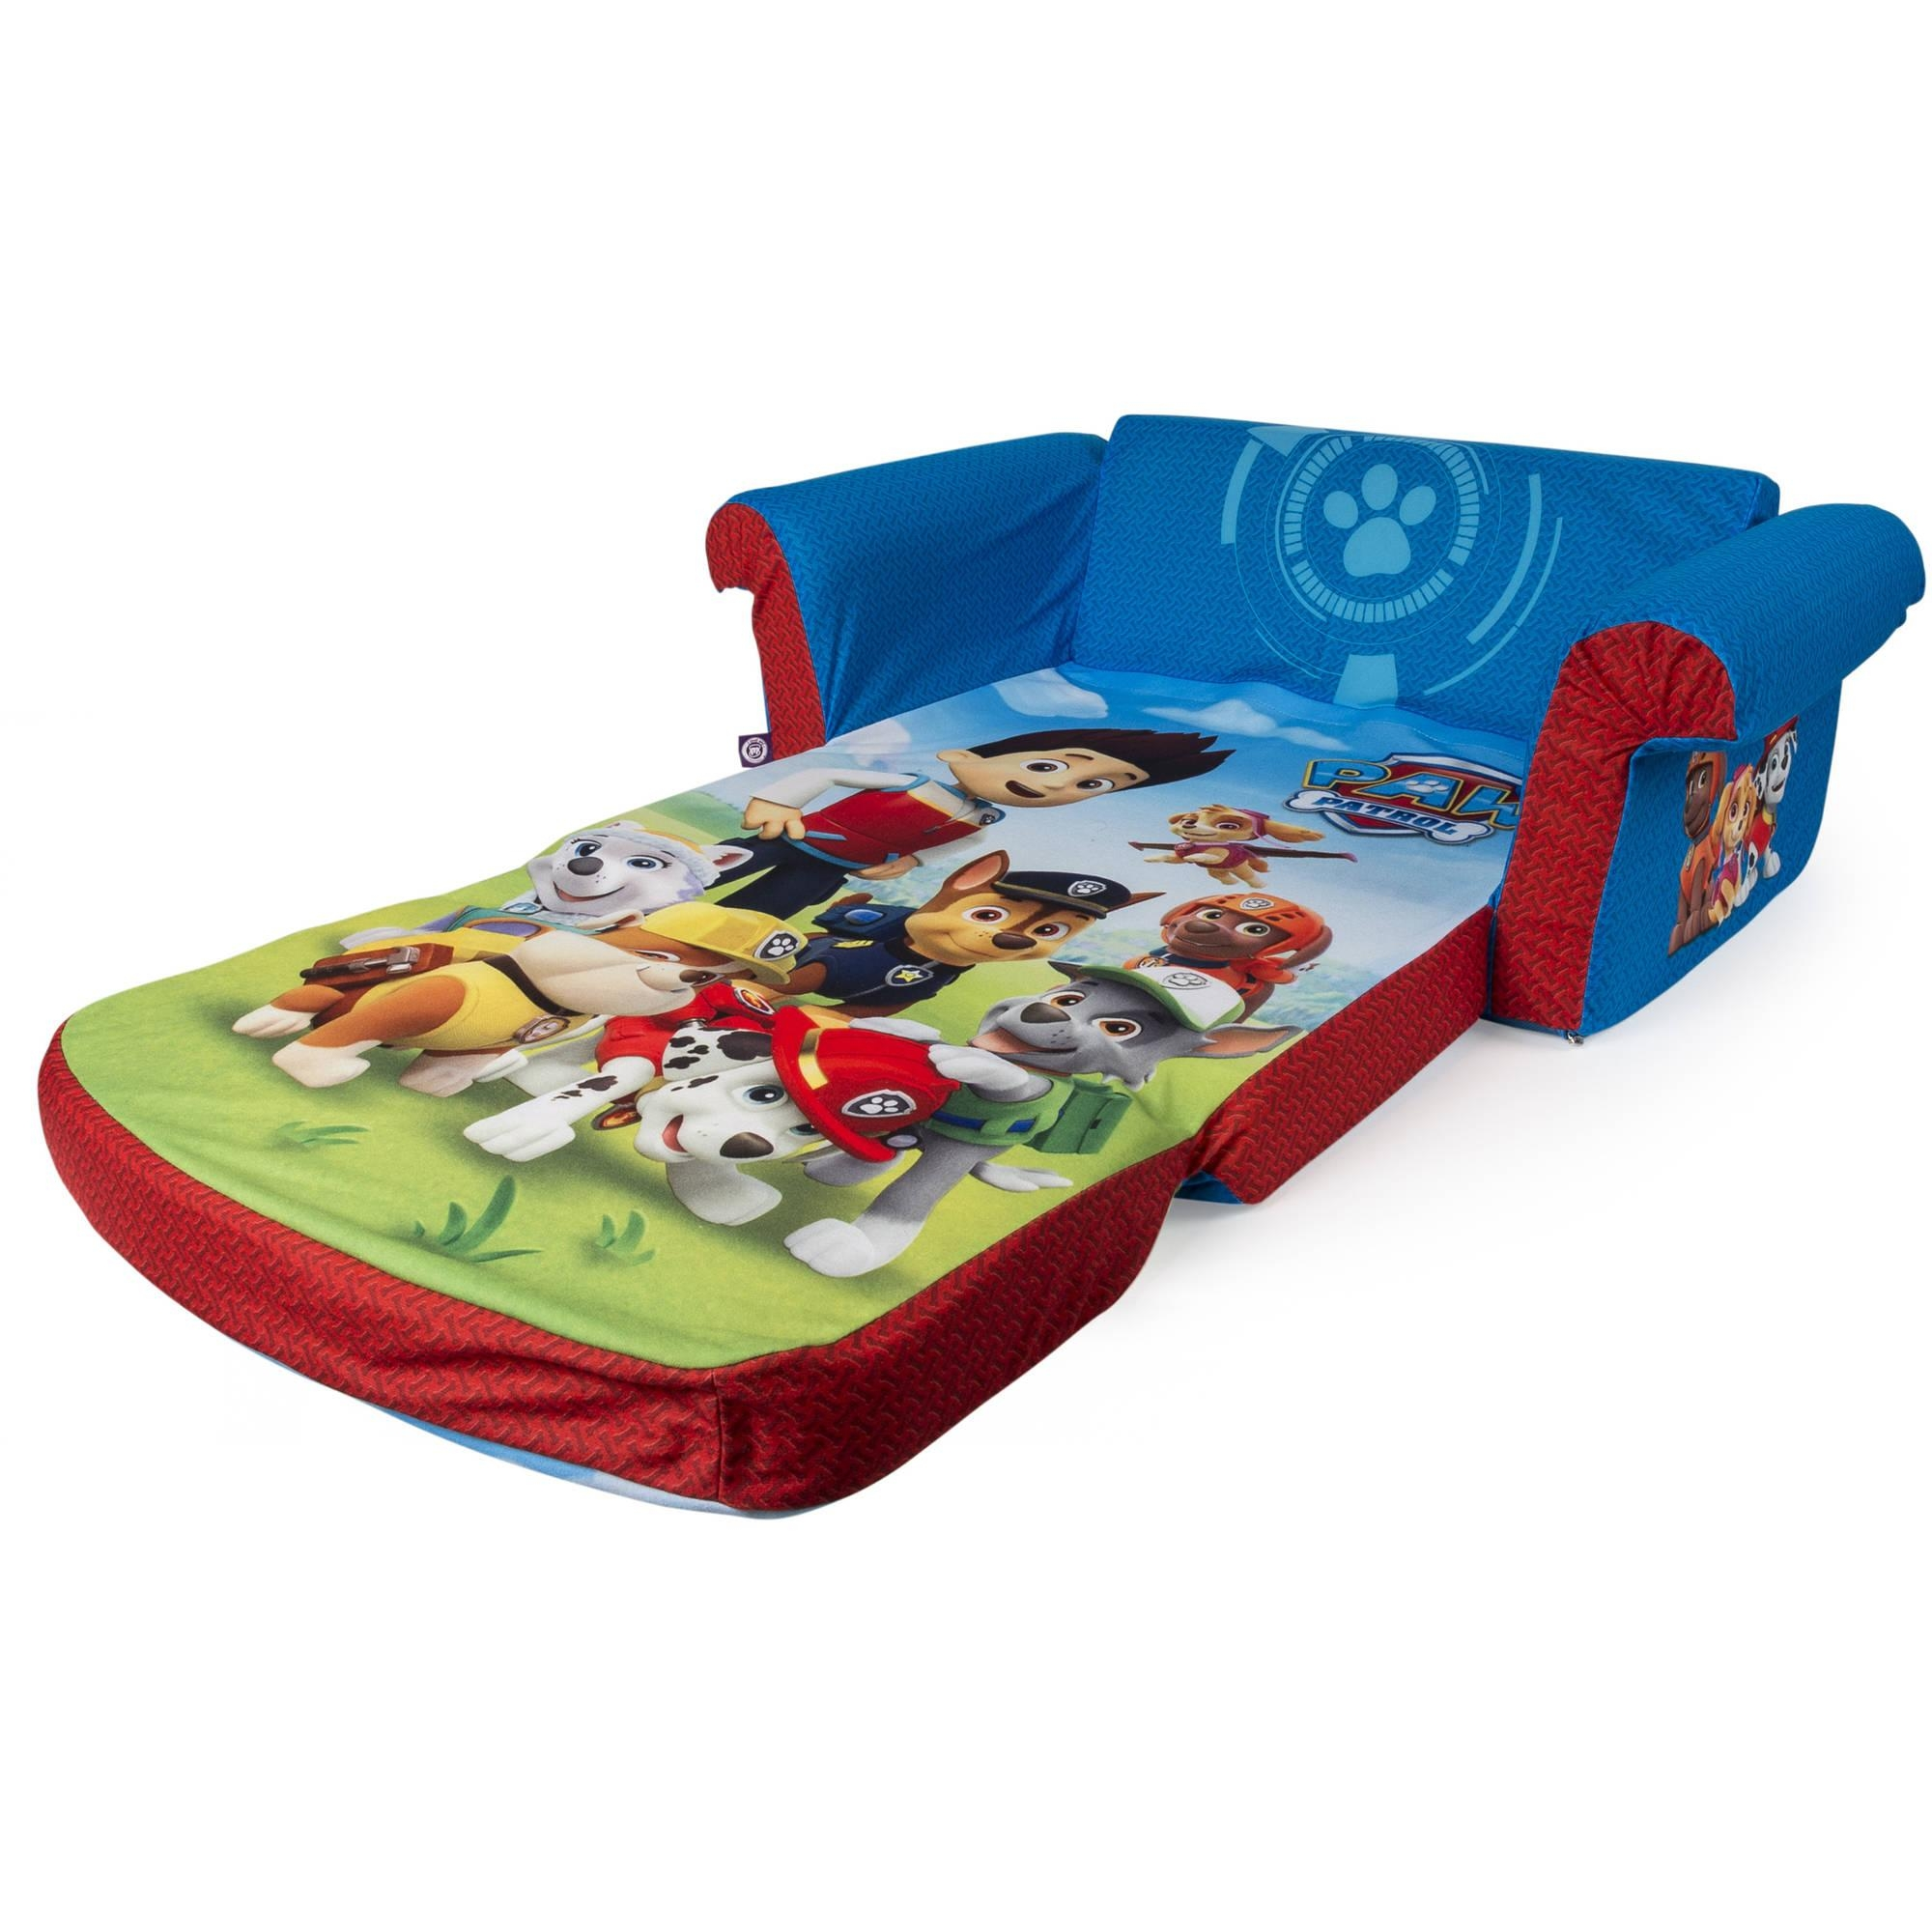 Marshmallow Furniture, Children's 2 In 1 Flip Open Foam Sofa With Toddler Sofa Chairs (Image 9 of 20)